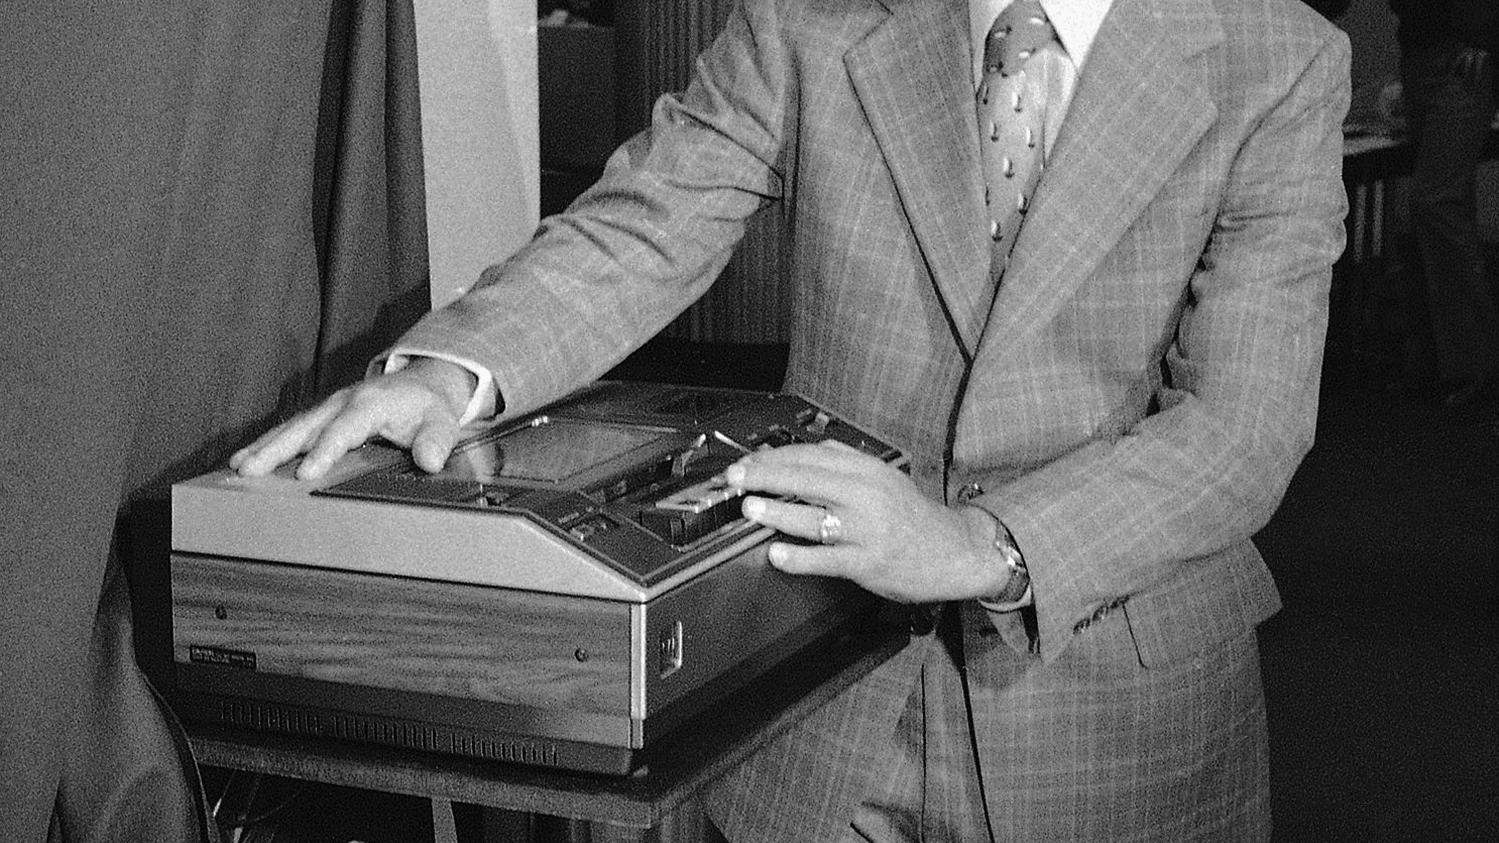 Roy H. Pollack, vice president and general manager of RCA Corporation consumer electronics, demonstrates a new video tape machine Introduced in New York, Aug. 23, 1977. The recorder, intended for home use, will be priced at $1,000, and will be capable of handling cassettes that can record up to four hours of television programs. Cassettes now available record up to two hours. (AP Photo)